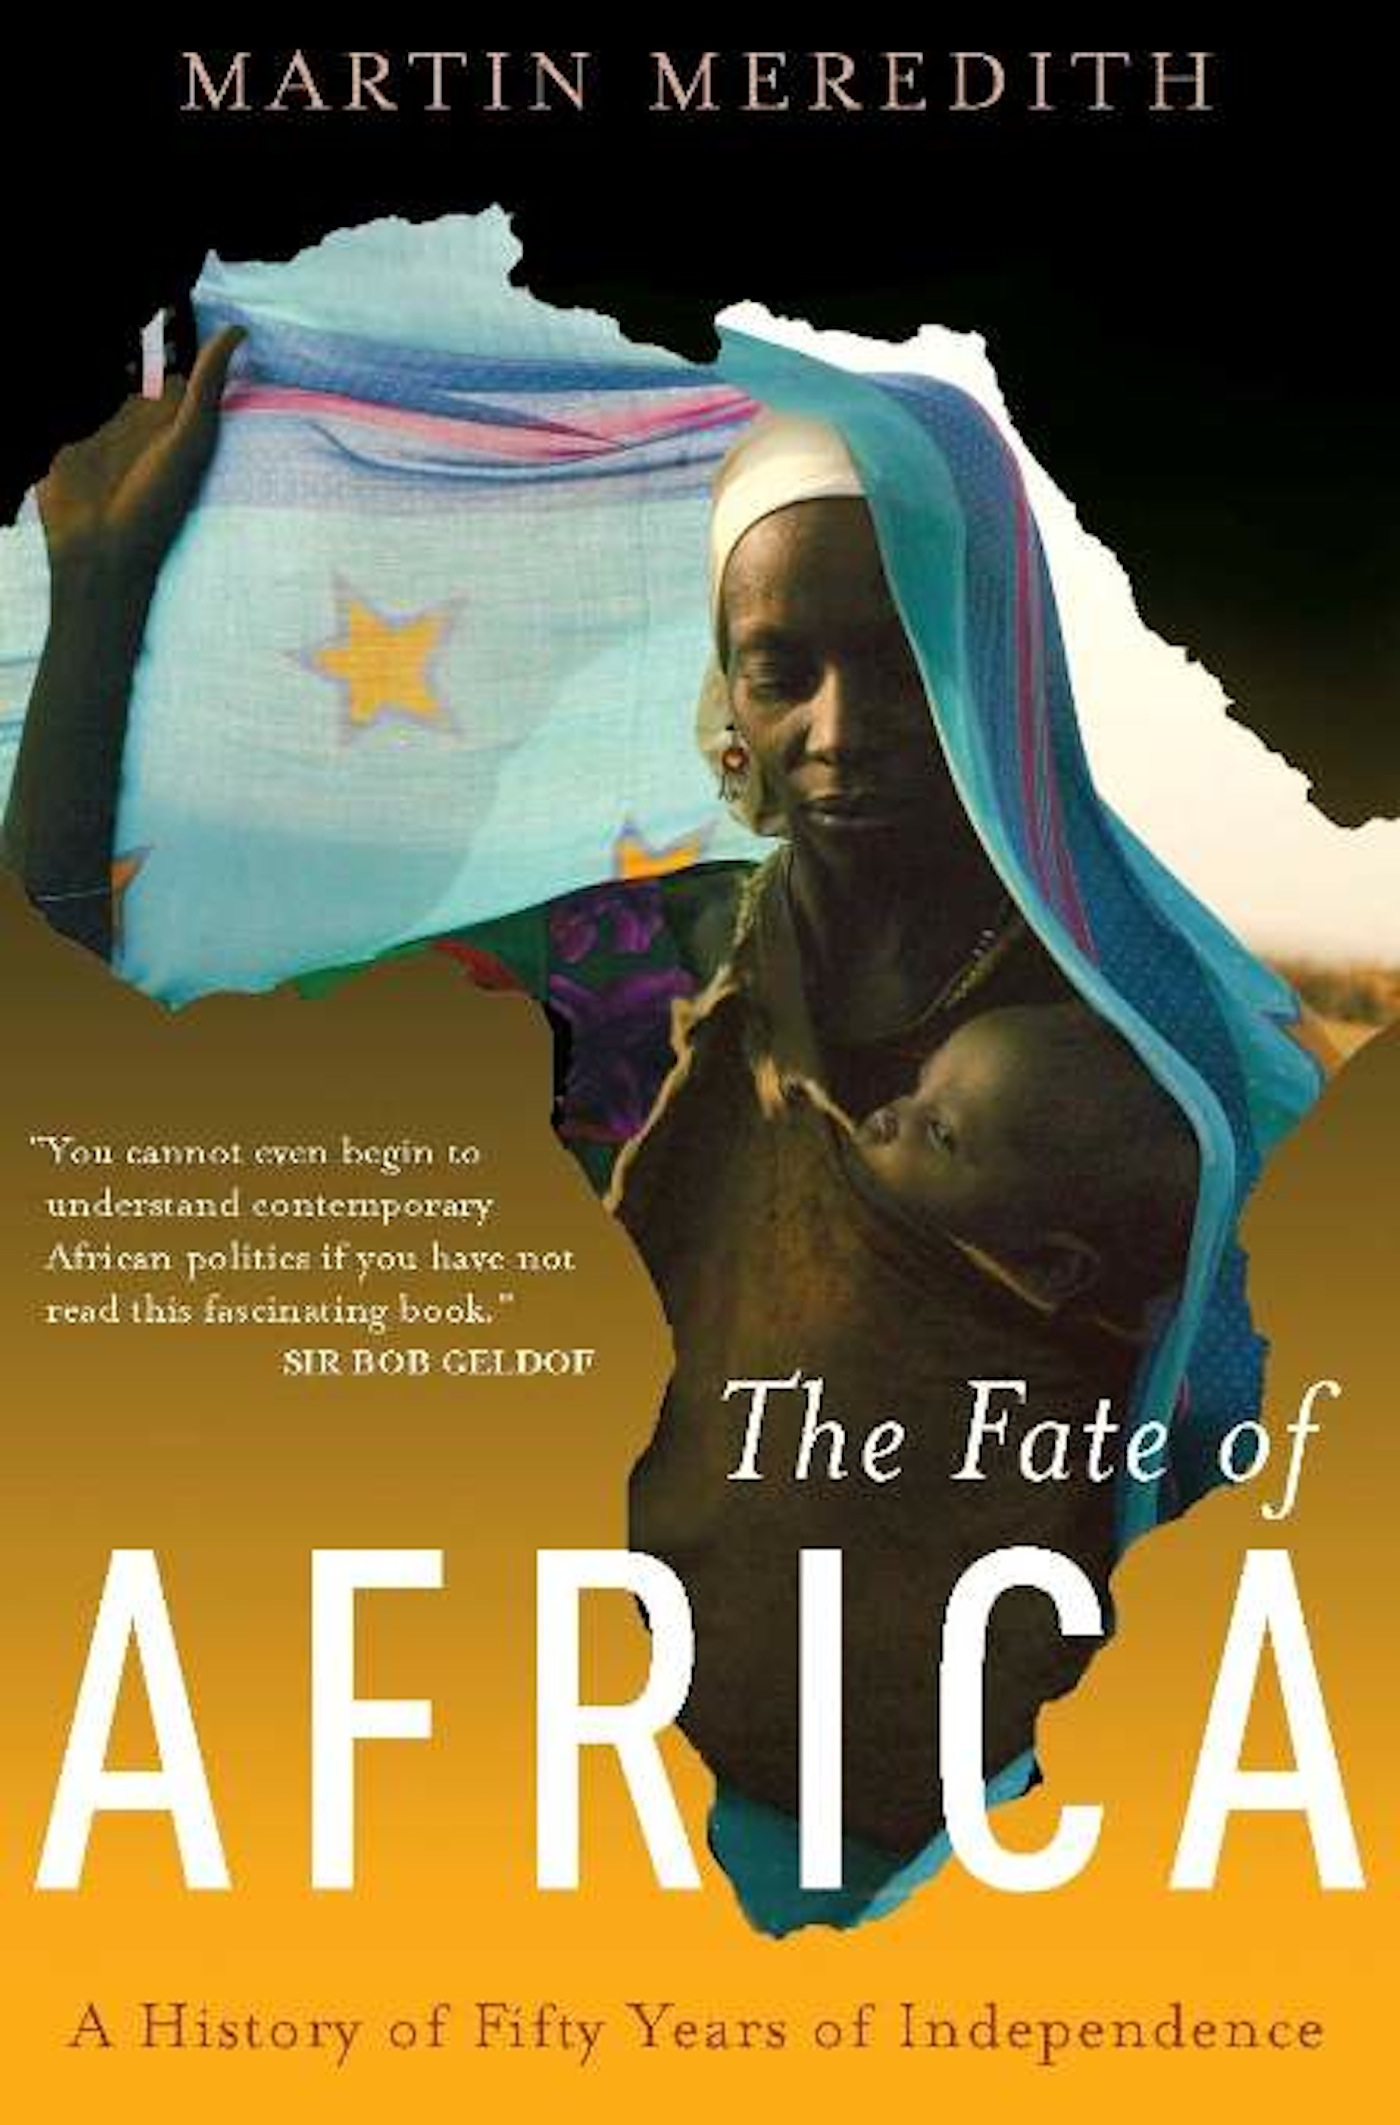 The Fate of Africa: A History of Fifty Years of Independence By: Martin Meredith